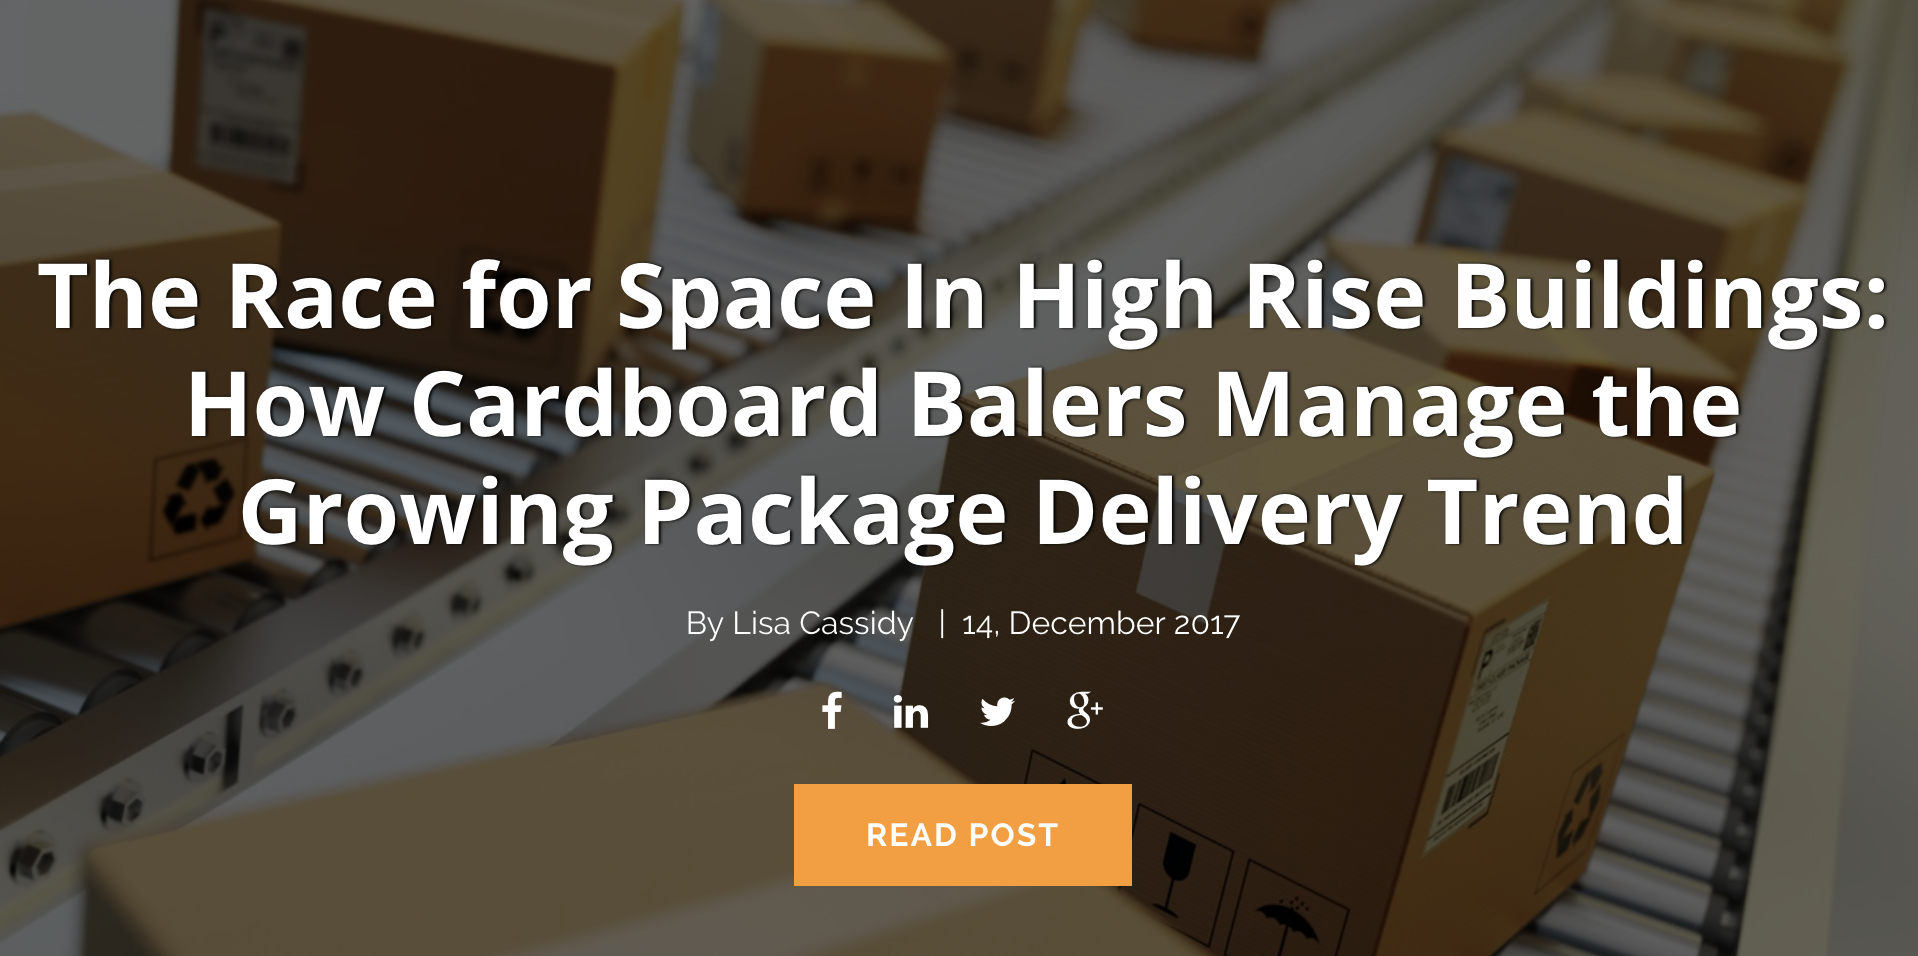 The Race for Space in High Rise Buildings